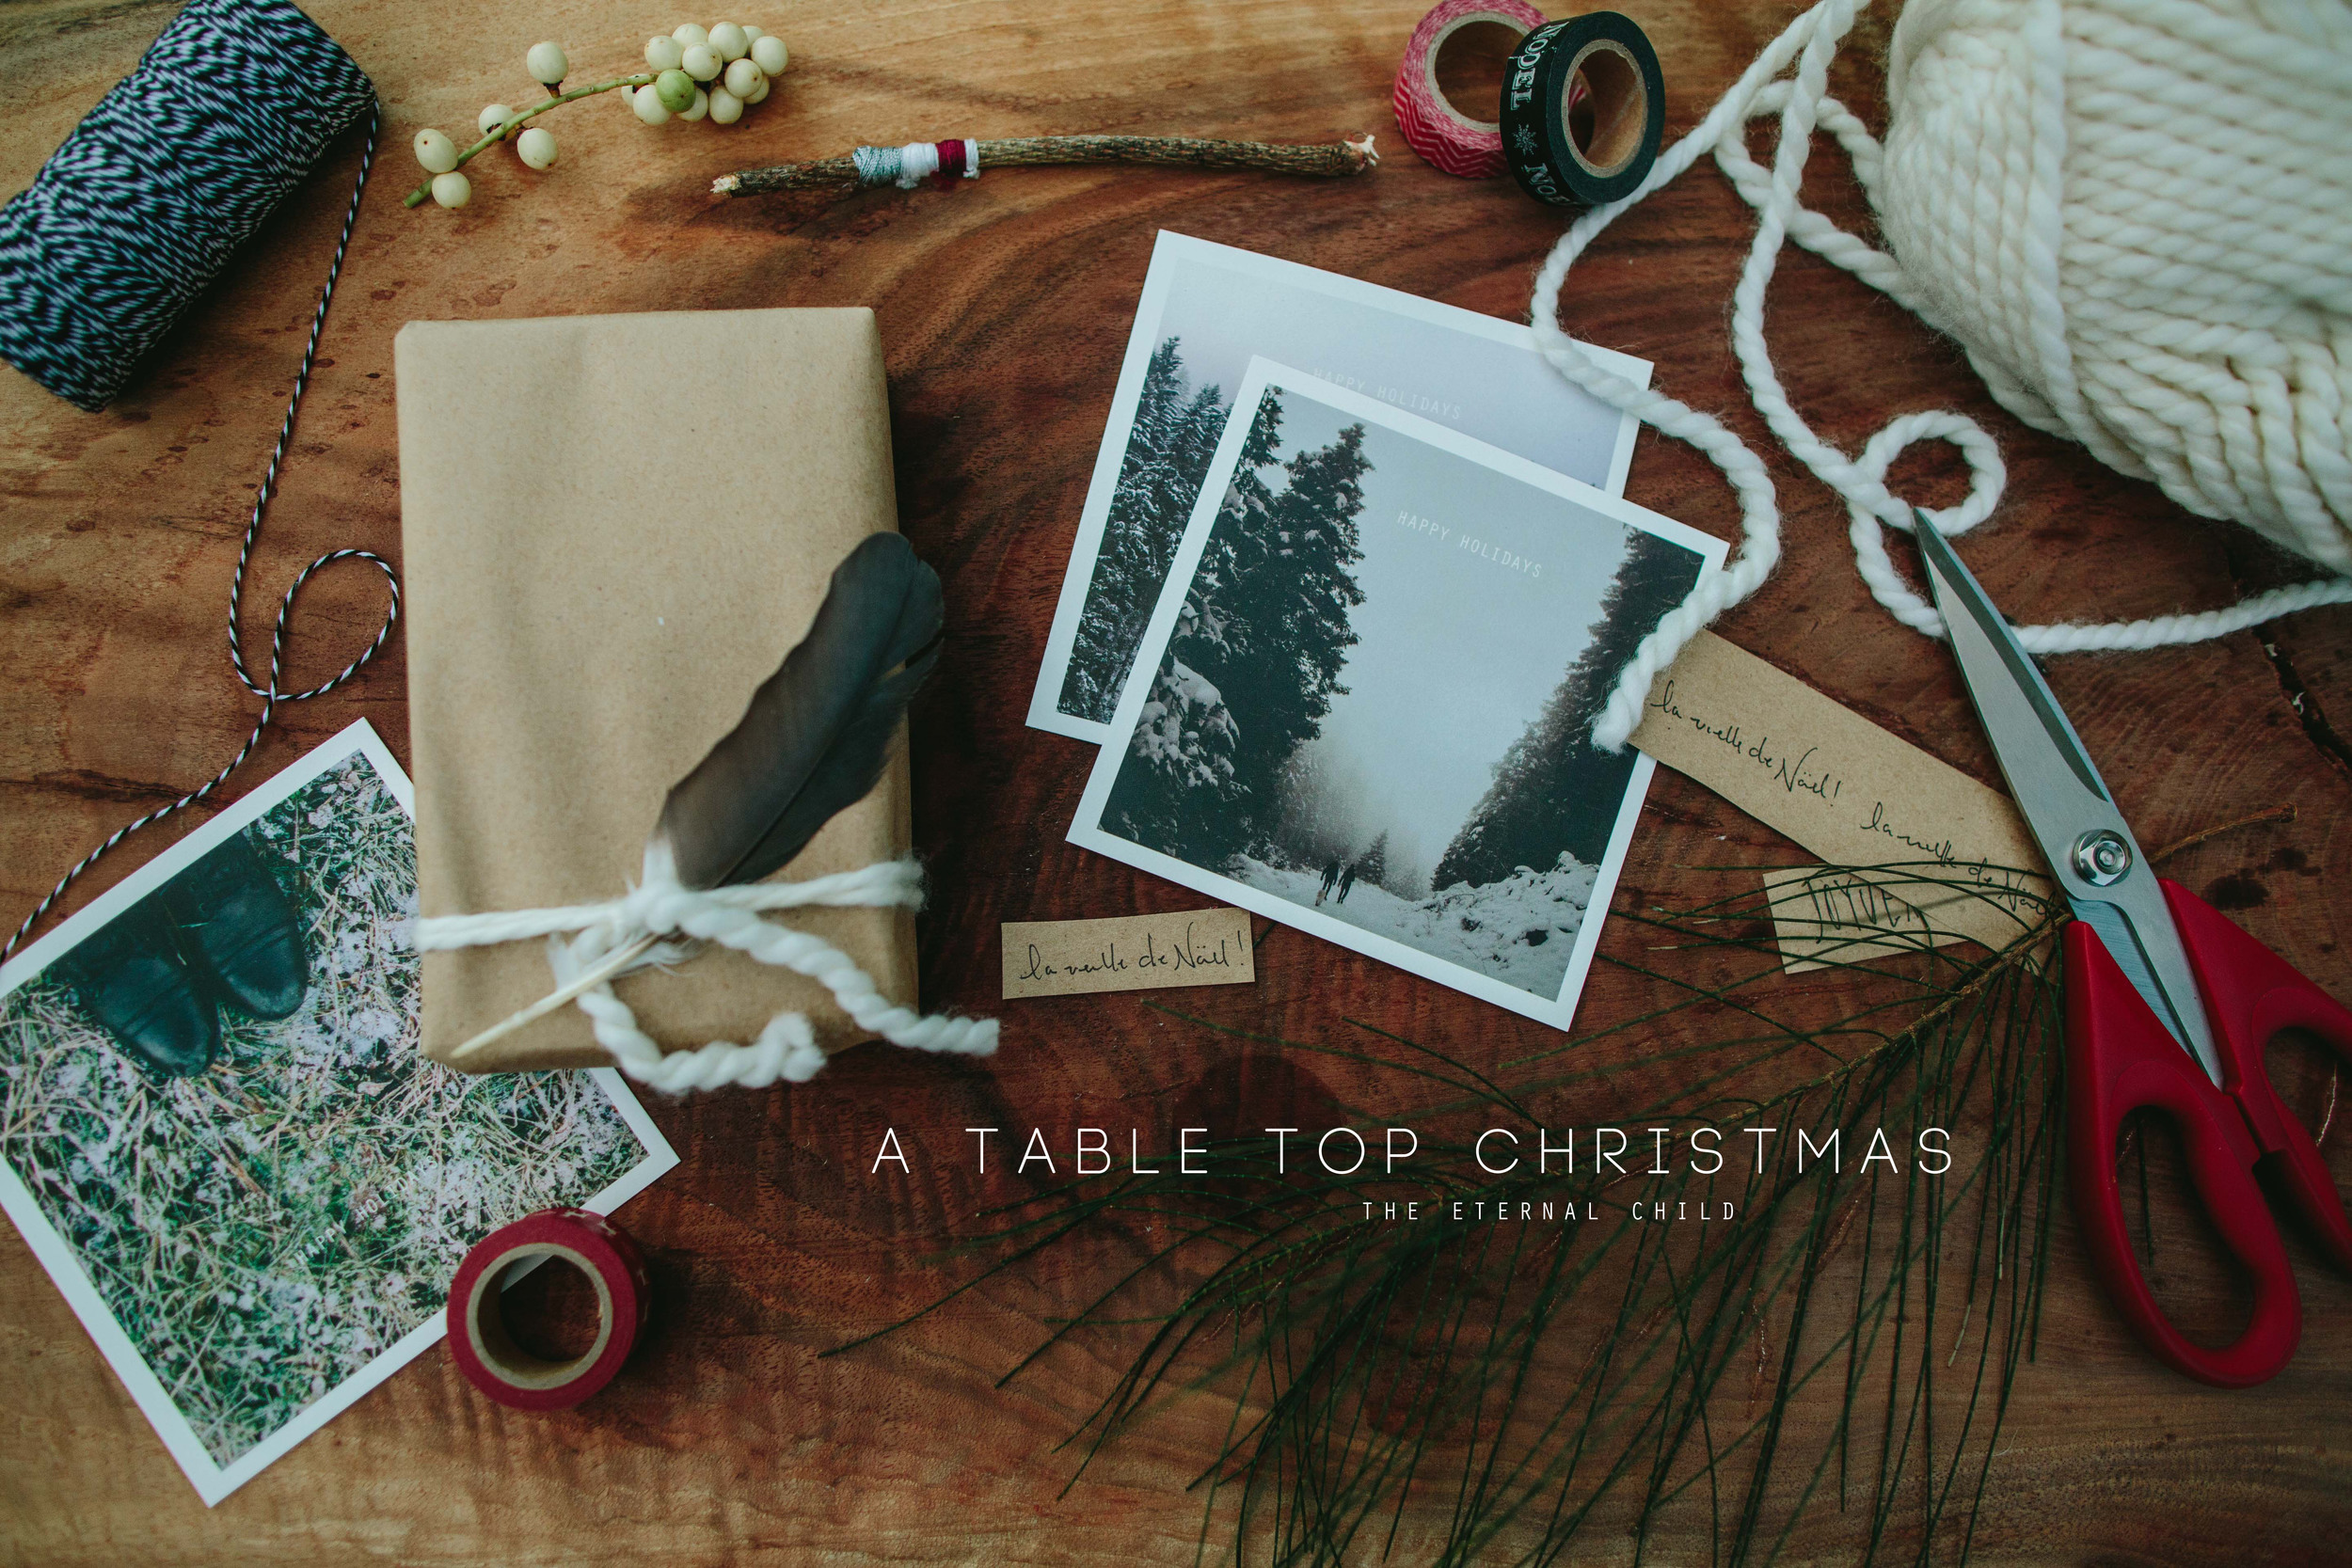 A TABLE TOP CHRISTMAS // THE ETERNAL CHILD